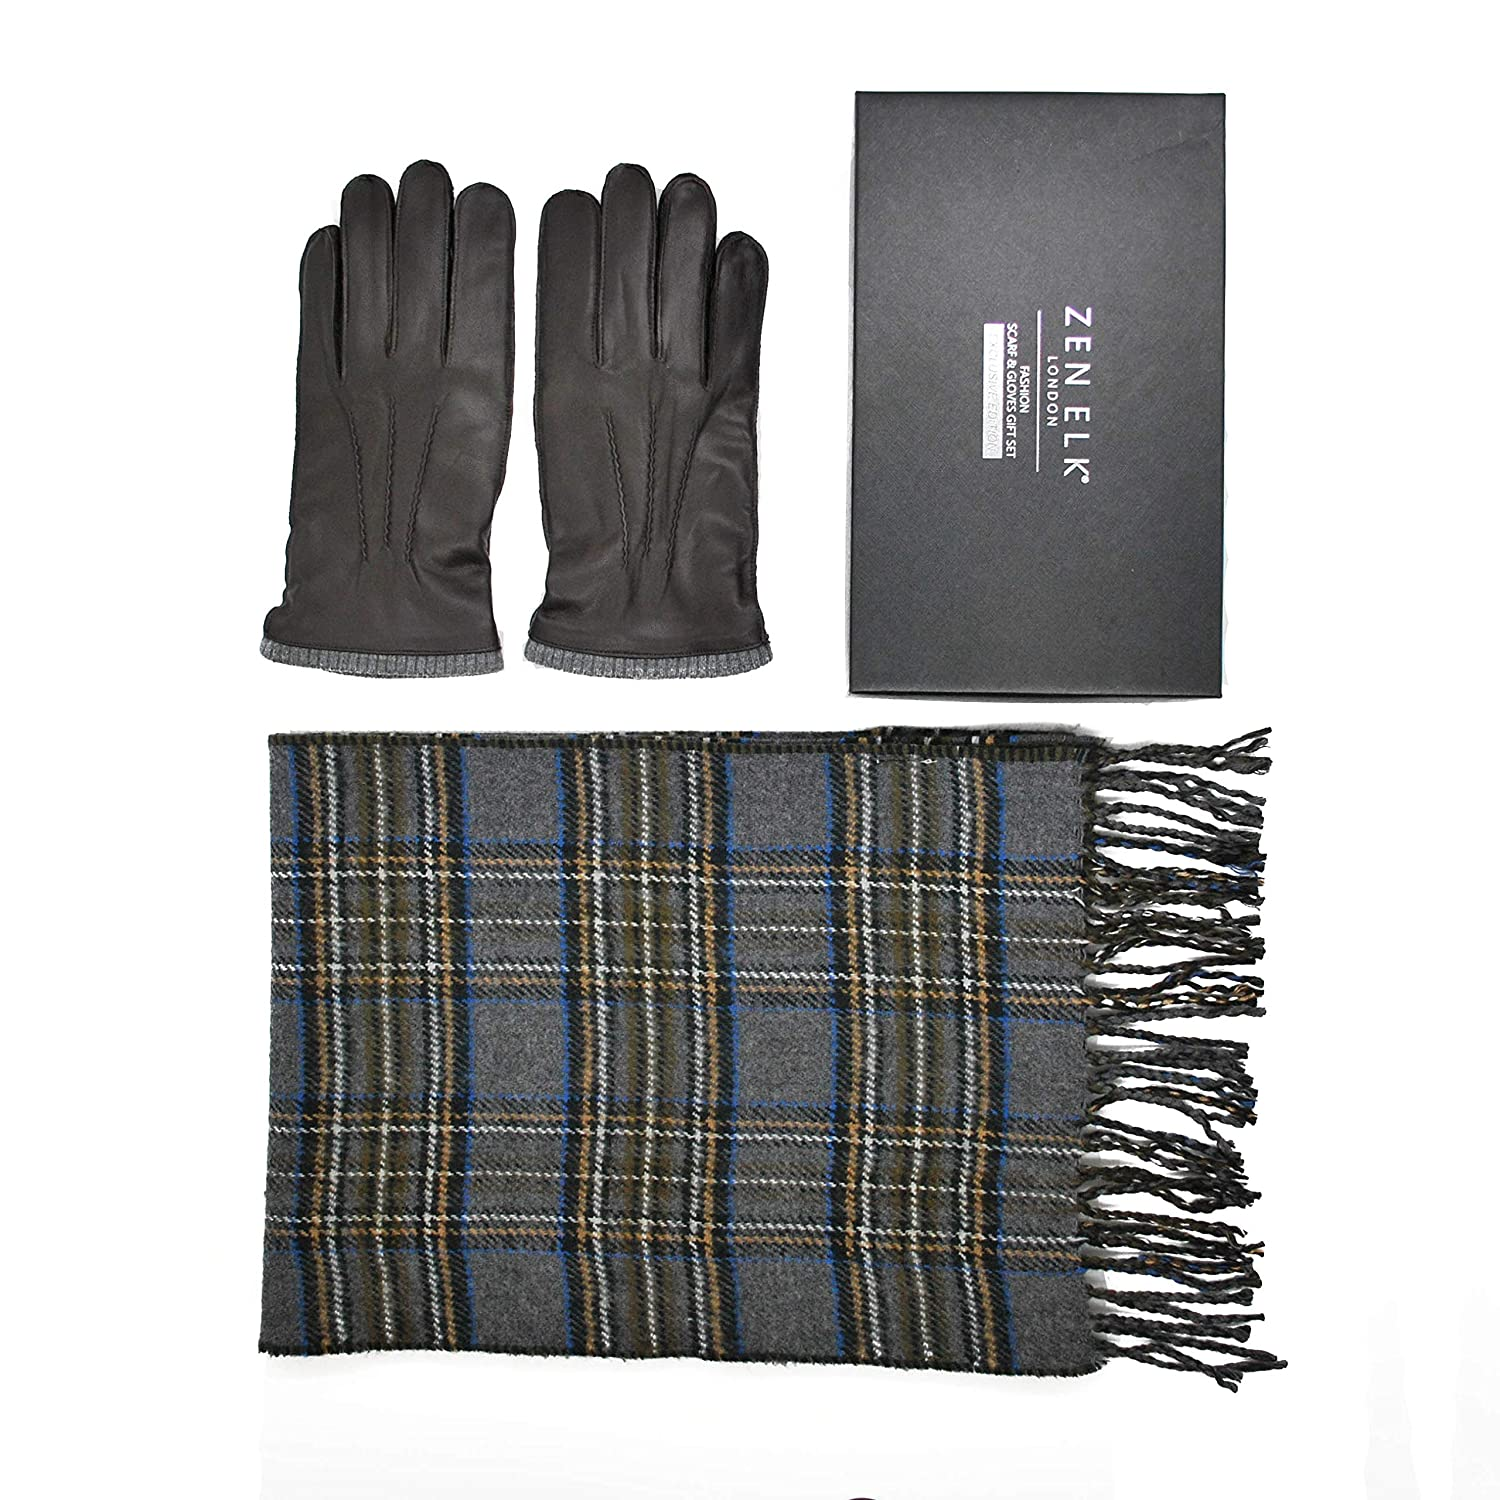 Men's Leather Gloves and Scarf Box Set #18 (S/M)